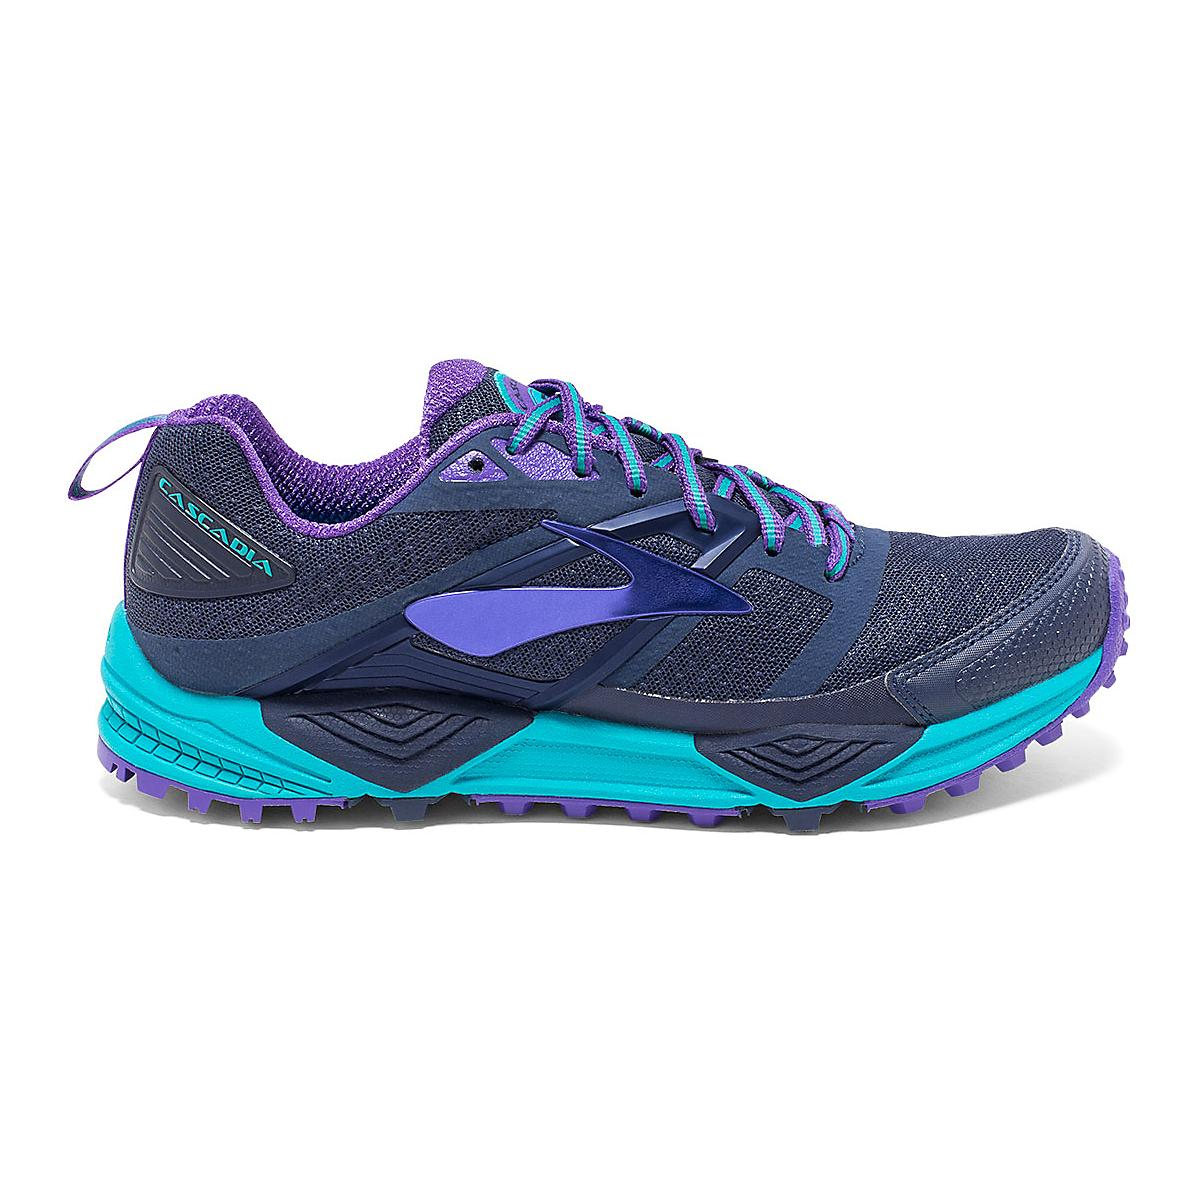 9332fb3fe7a Women s Brooks Cascadia 12 Trail Running Shoes